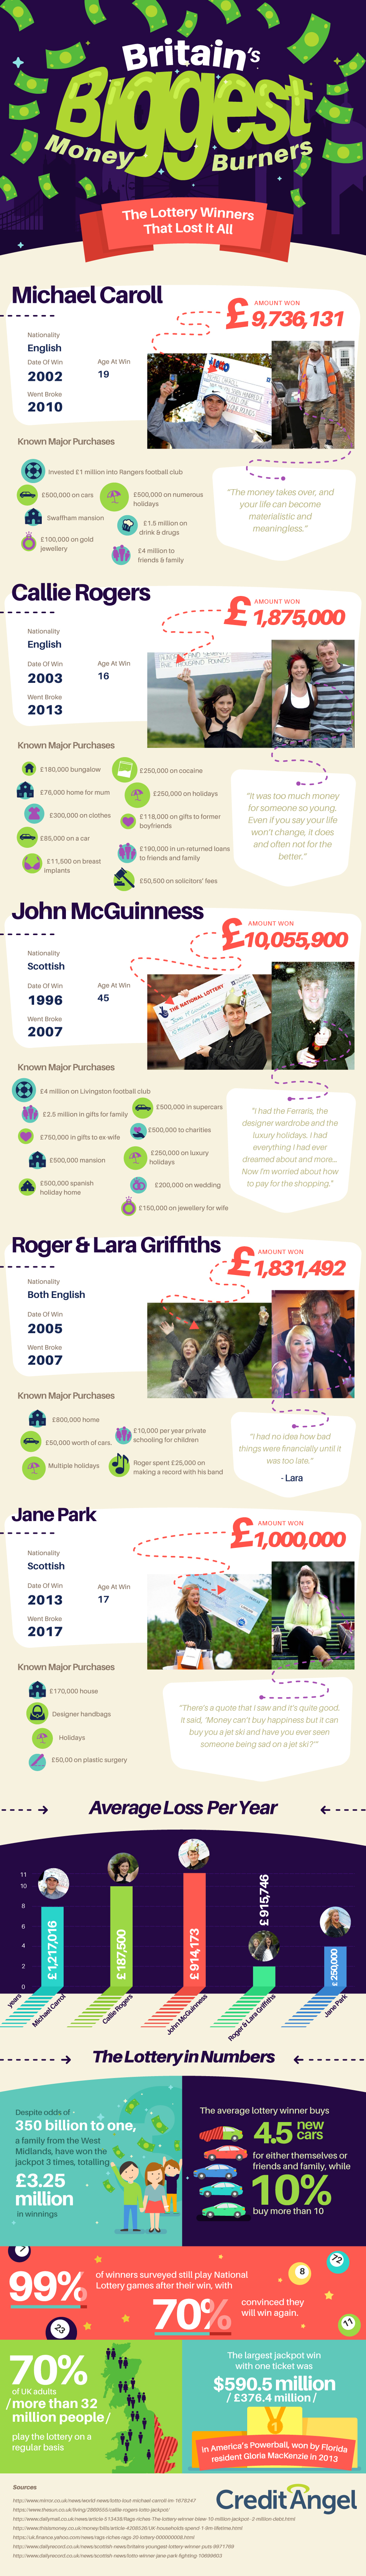 Britain's 5 Top Riches-to-Rags Lottery Stories - Infographic